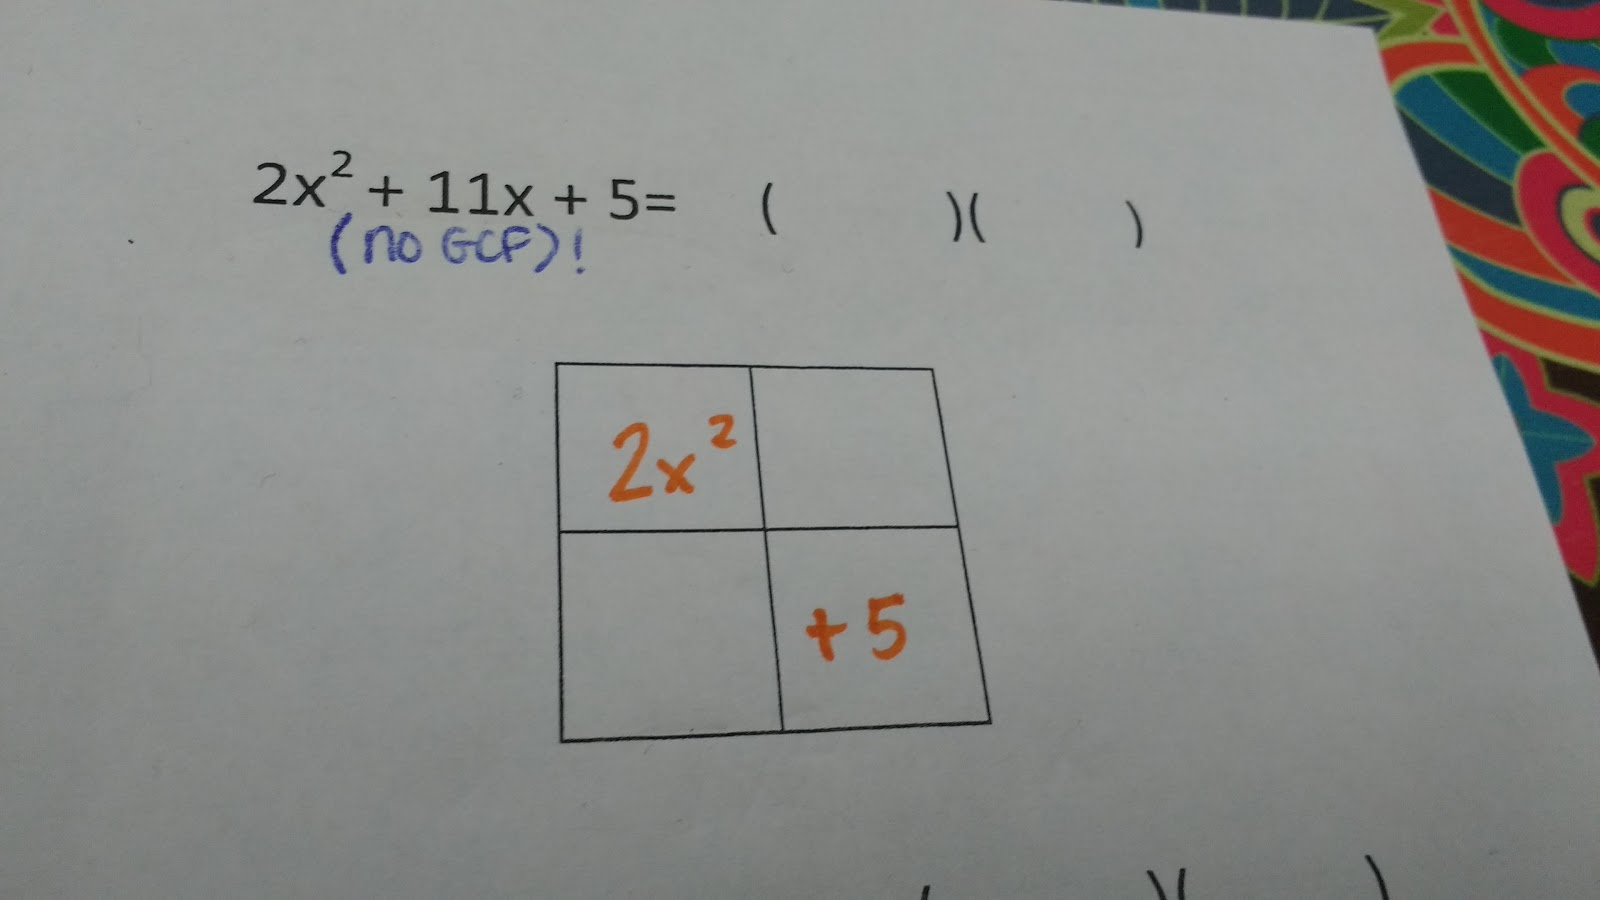 This Takes Care Of The 2x^2 And The 5 From 2x^2 + 11x + 5 The 11x Term  Tells Me That My Two Missing Boxes Add To 11x